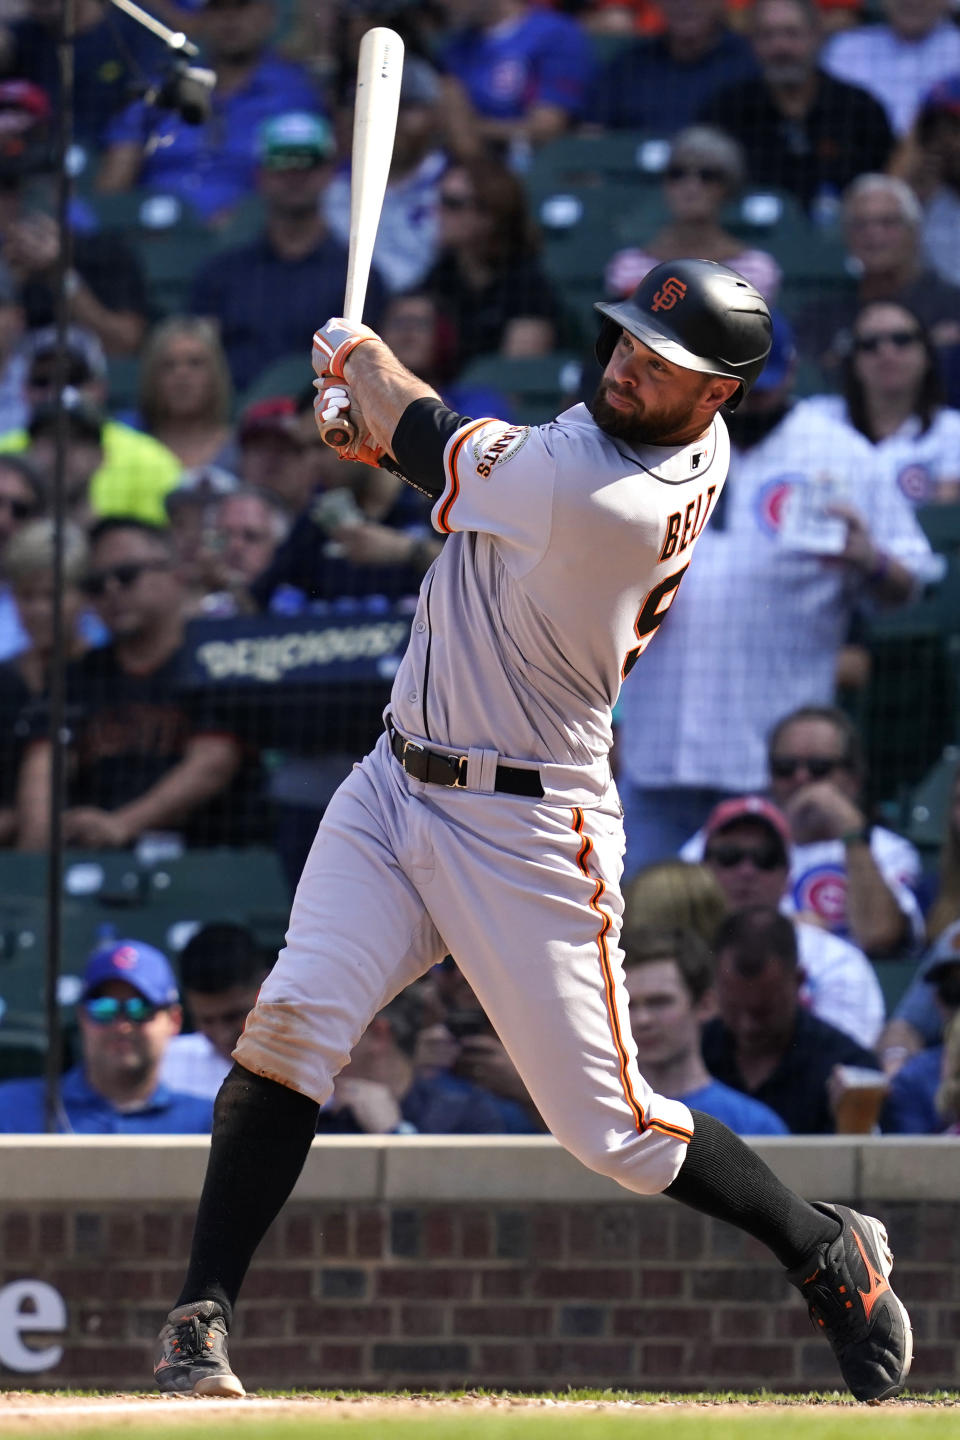 San Francisco Giants' Brandon Belt hits a two-run home run during the seventh inning of a baseball game against the Chicago Cubs in Chicago, Friday, Sept. 10, 2021. (AP Photo/Nam Y. Huh)